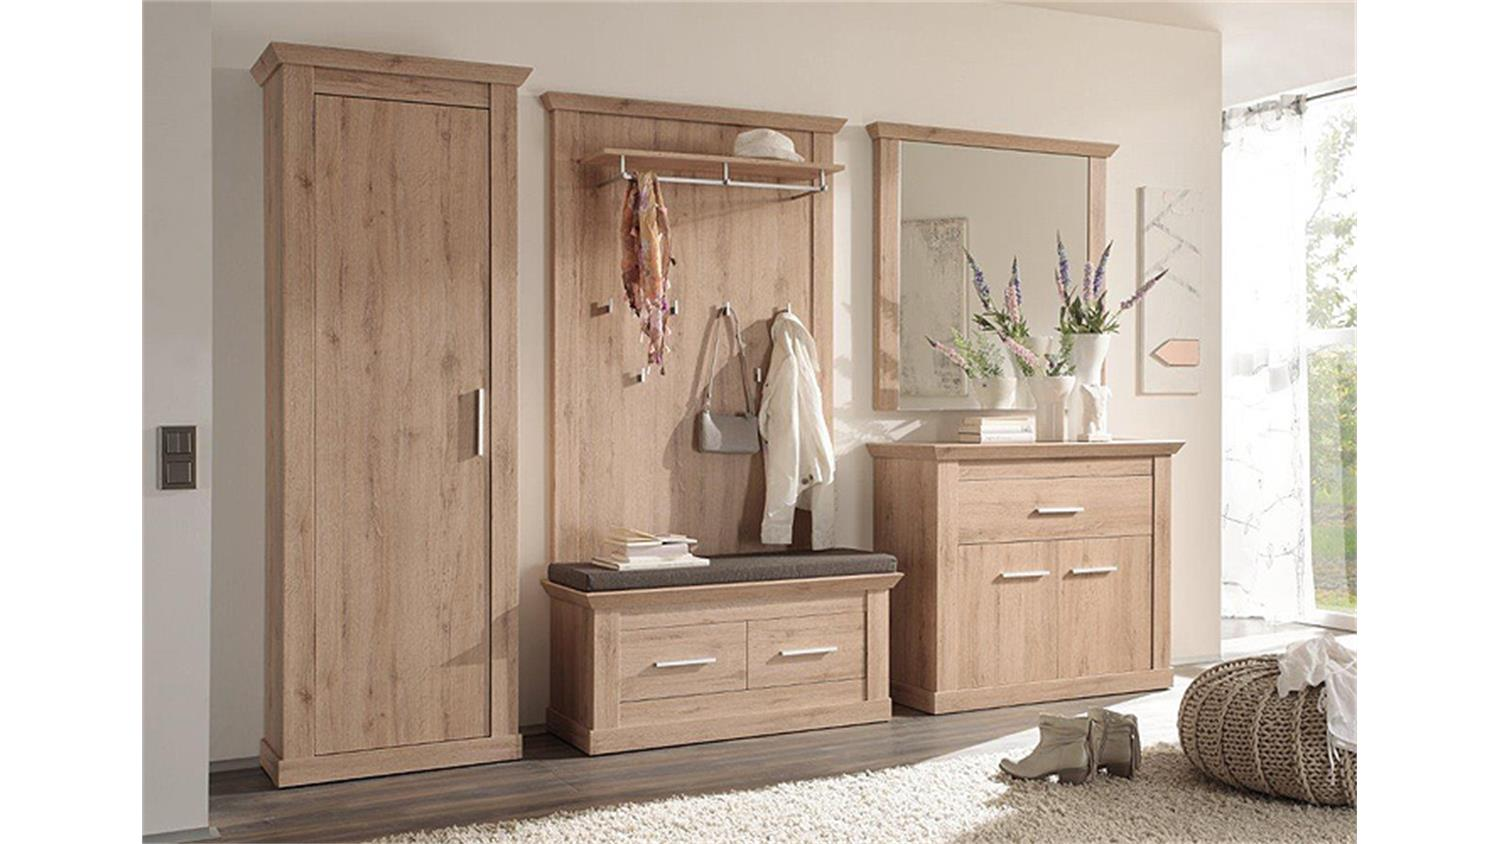 garderobenschrank 3 savona garderobe denmark eiche. Black Bedroom Furniture Sets. Home Design Ideas